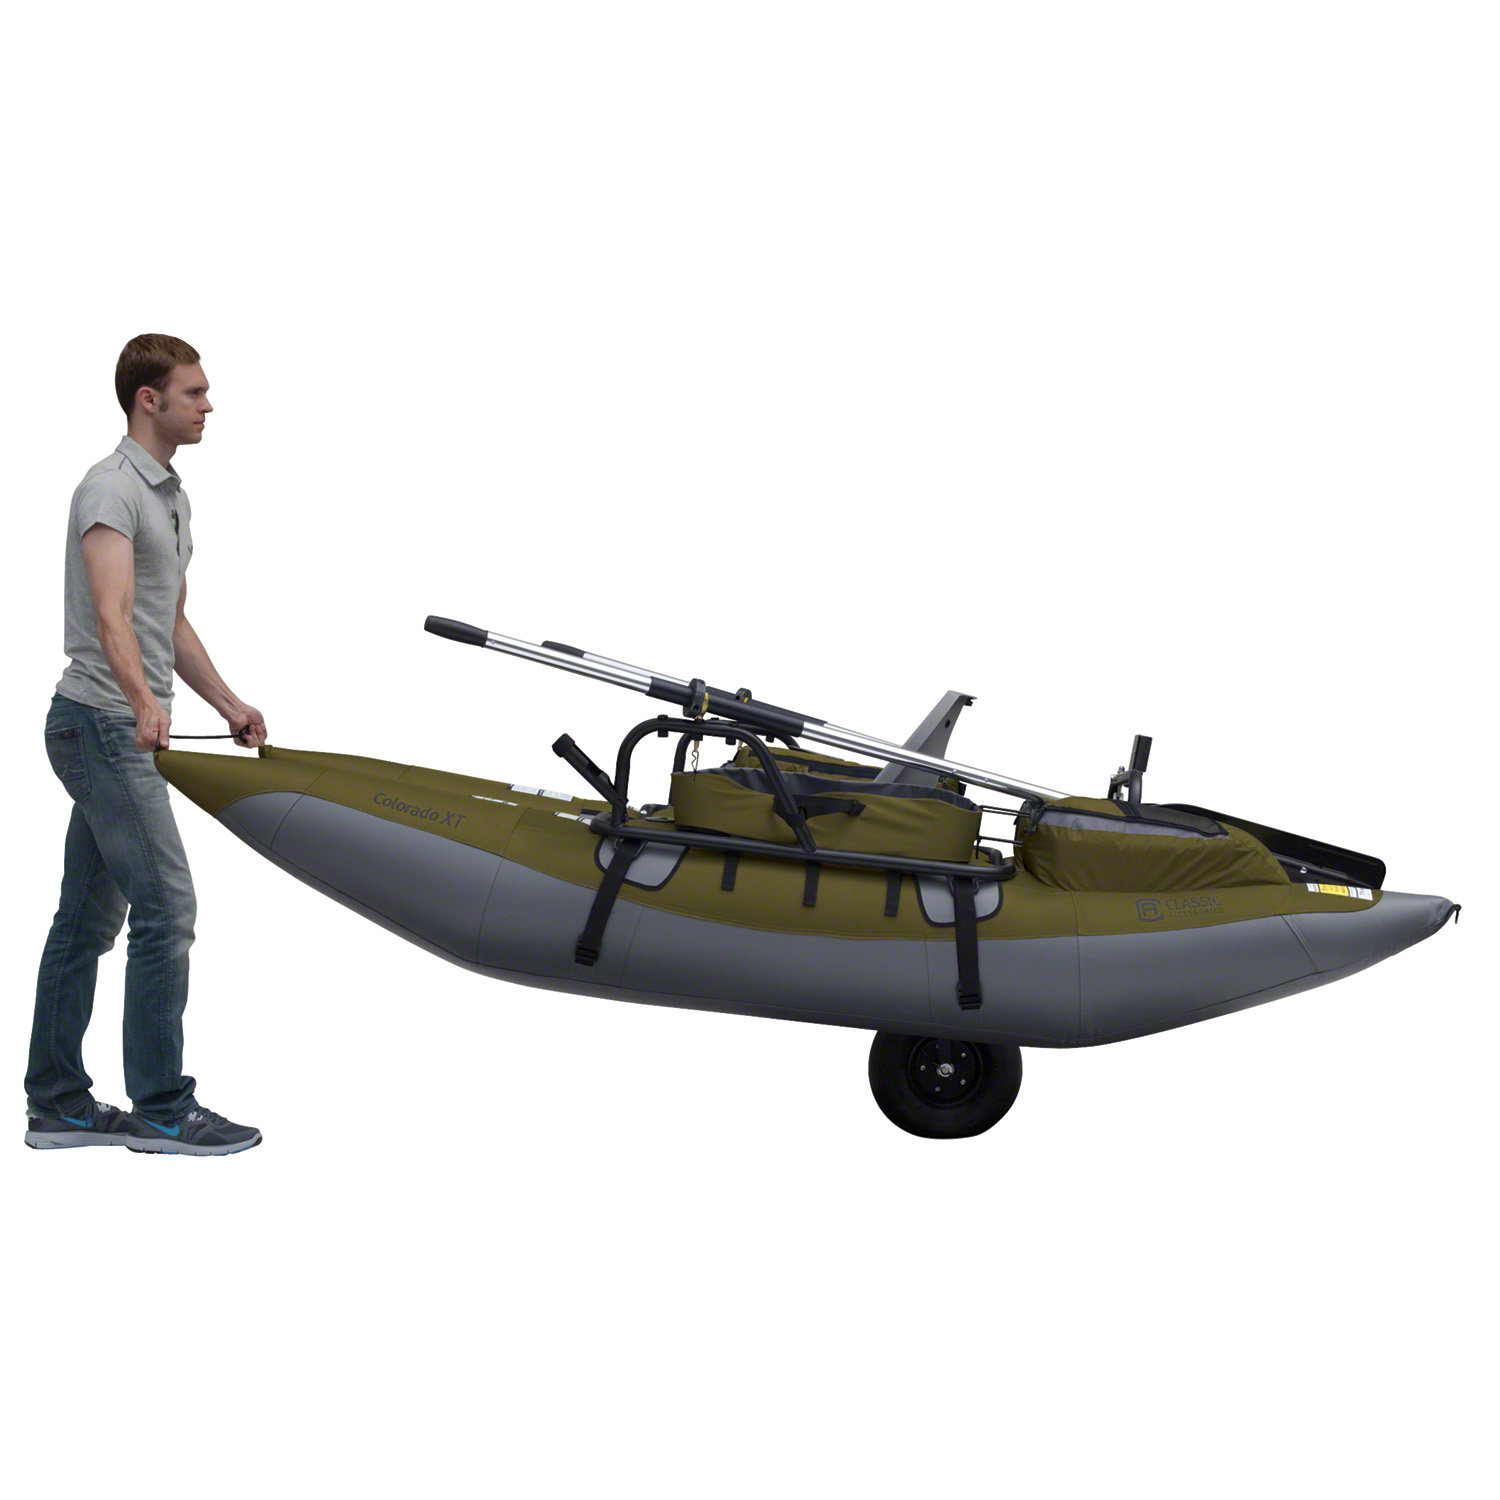 Inflatable pontoon boats and fishing float tubes - Classic Accessories Colorado Xt Pontoon Boat